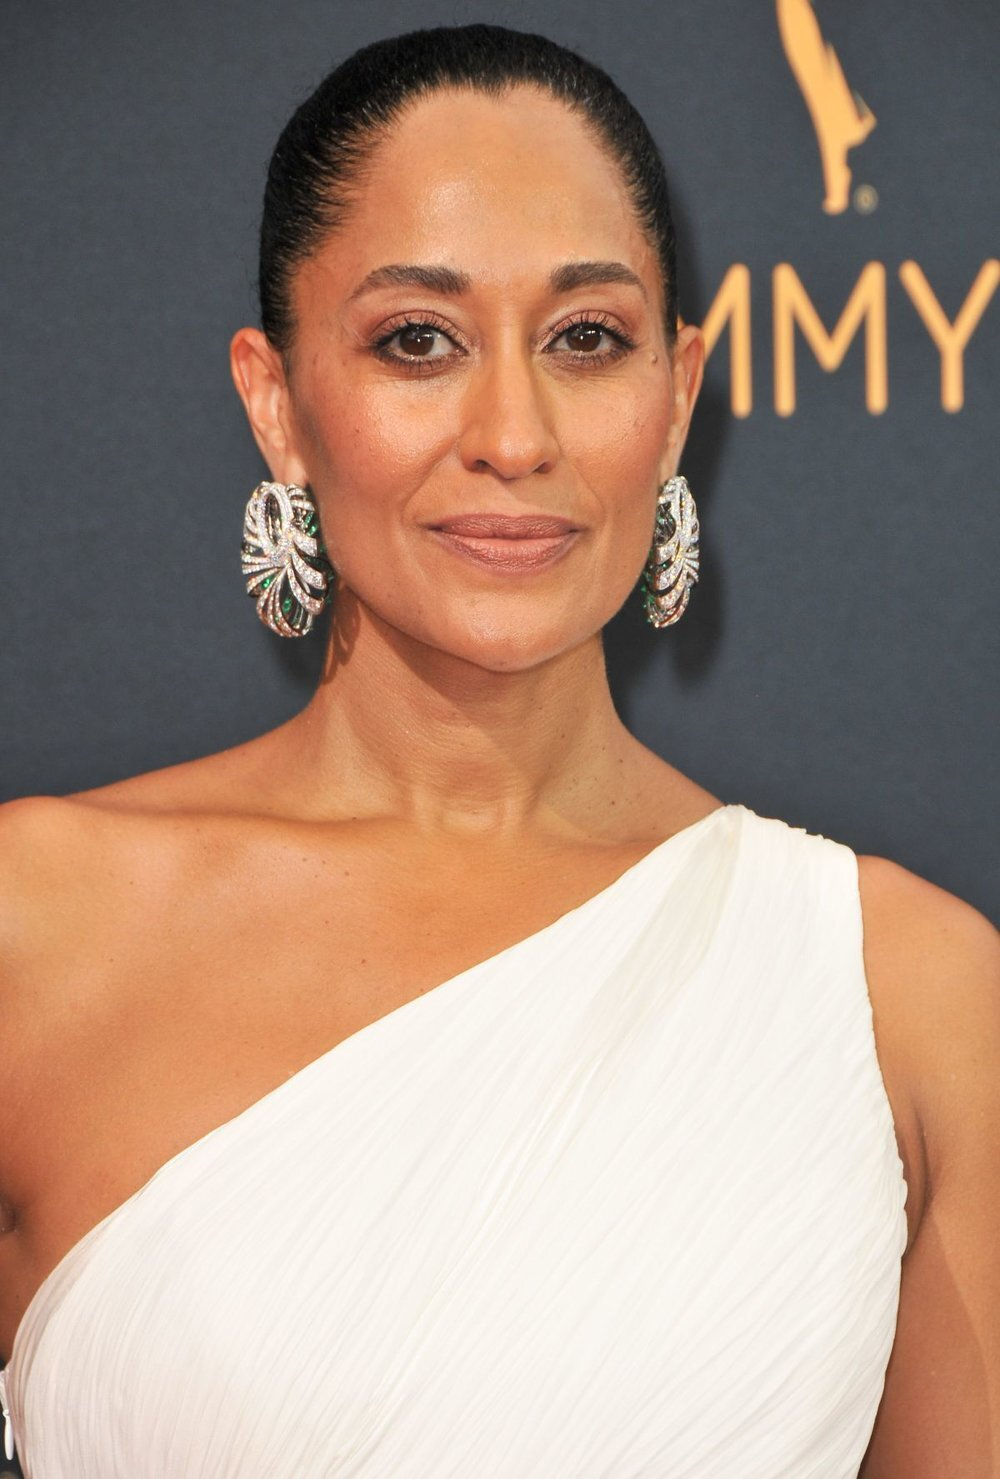 tracee-ellis-ross-at-68th-annual-primetime-emmy-awards-in-los-angeles-09-18-2016_3.jpg